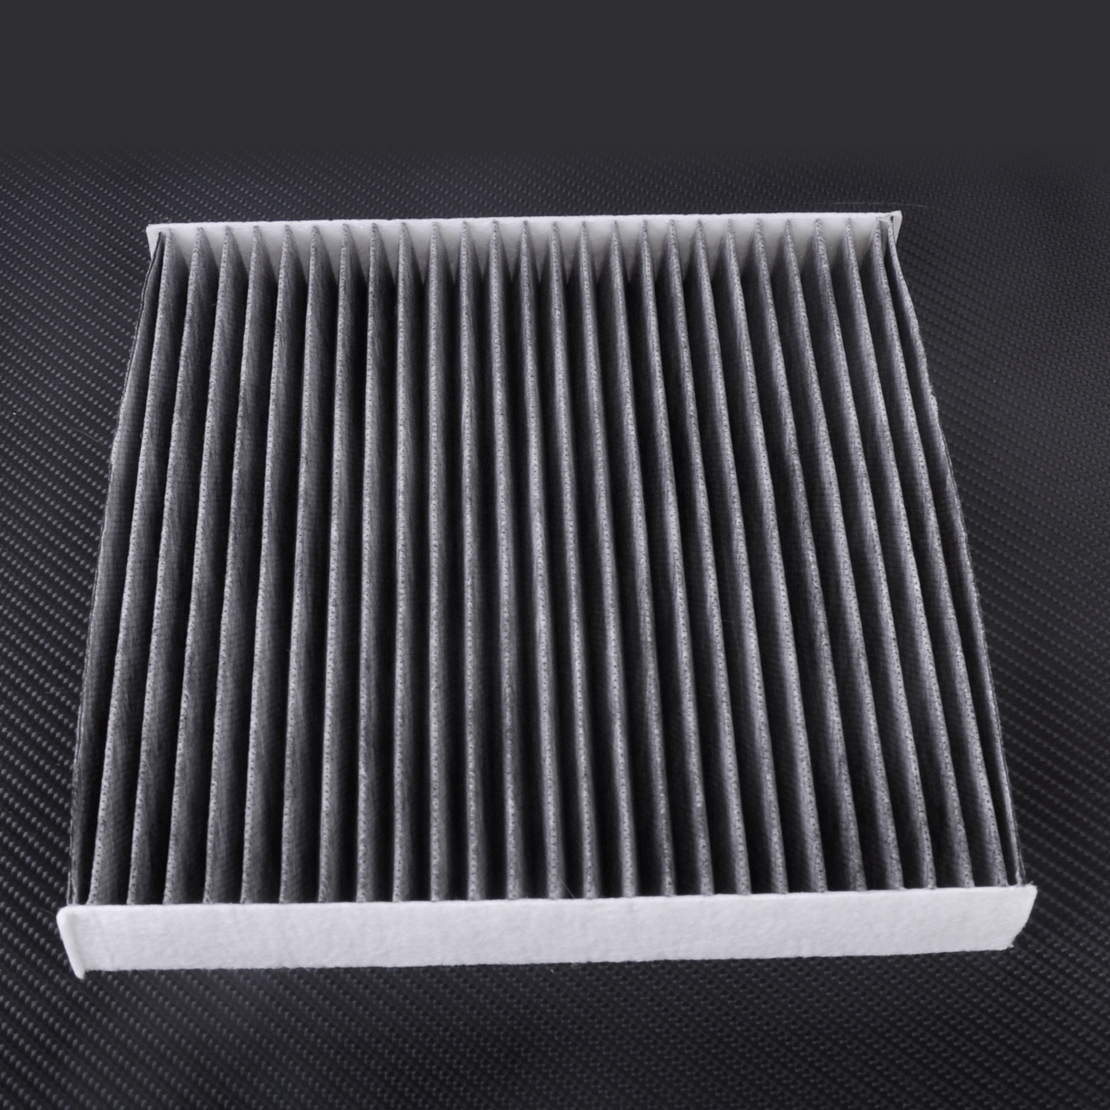 OEM SDAA Cabin Air Filter For Acura MDX RL TL TSX Honda - Acura tsx air filter